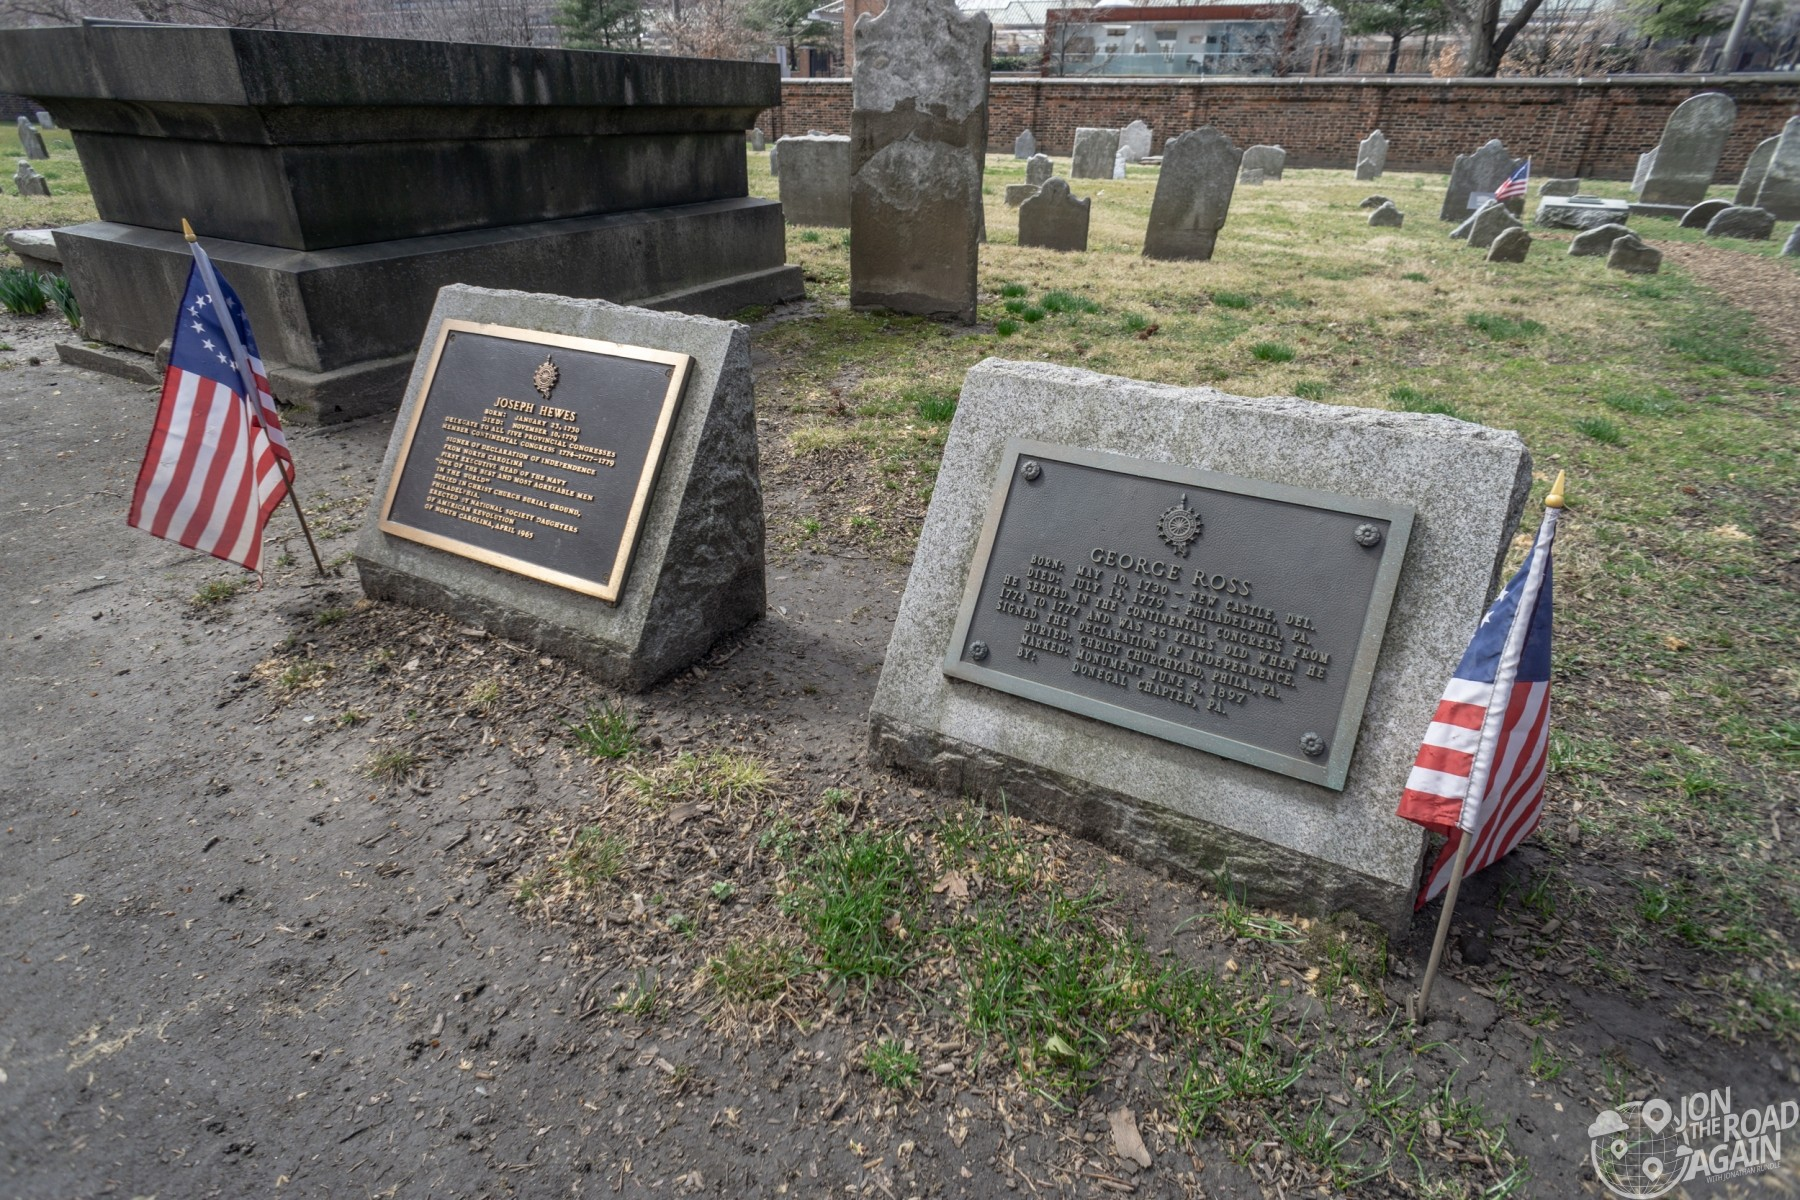 Graves of Joseph Hewes and George Ross